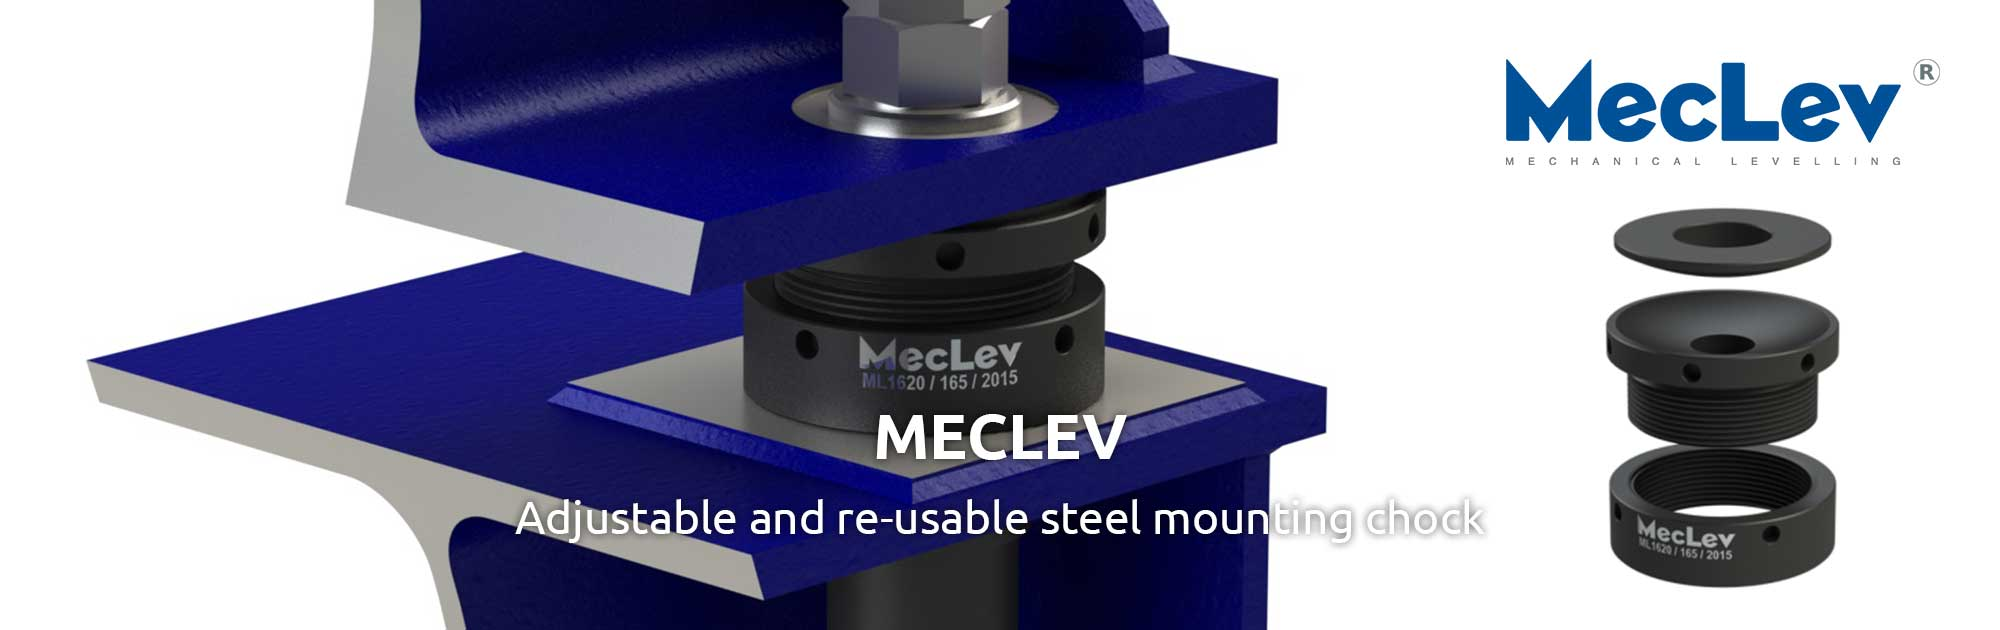 MecLev is an adjustable and re-usable steel mounting chock